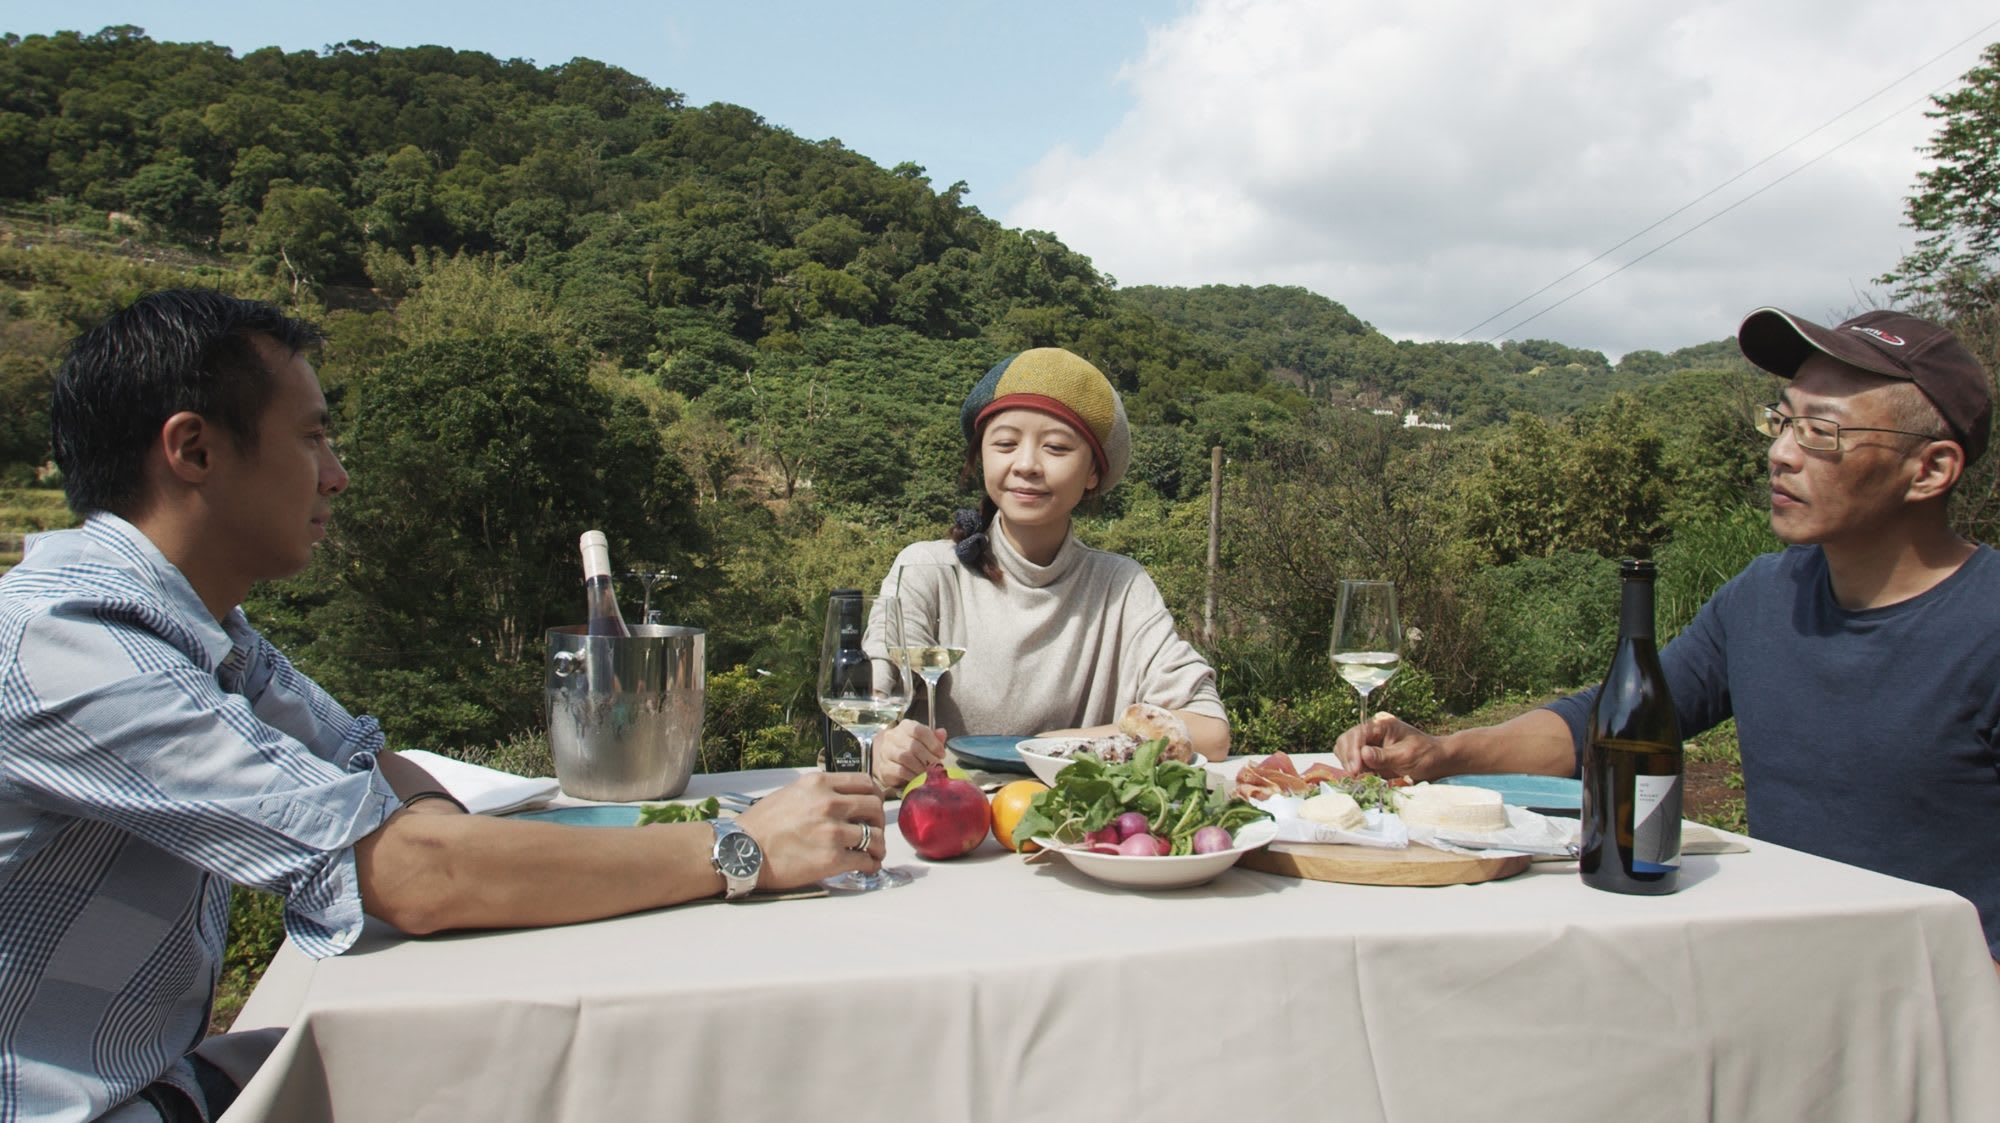 The chef transforming Taipei's farm produce into French cuisine | CNA Luxury